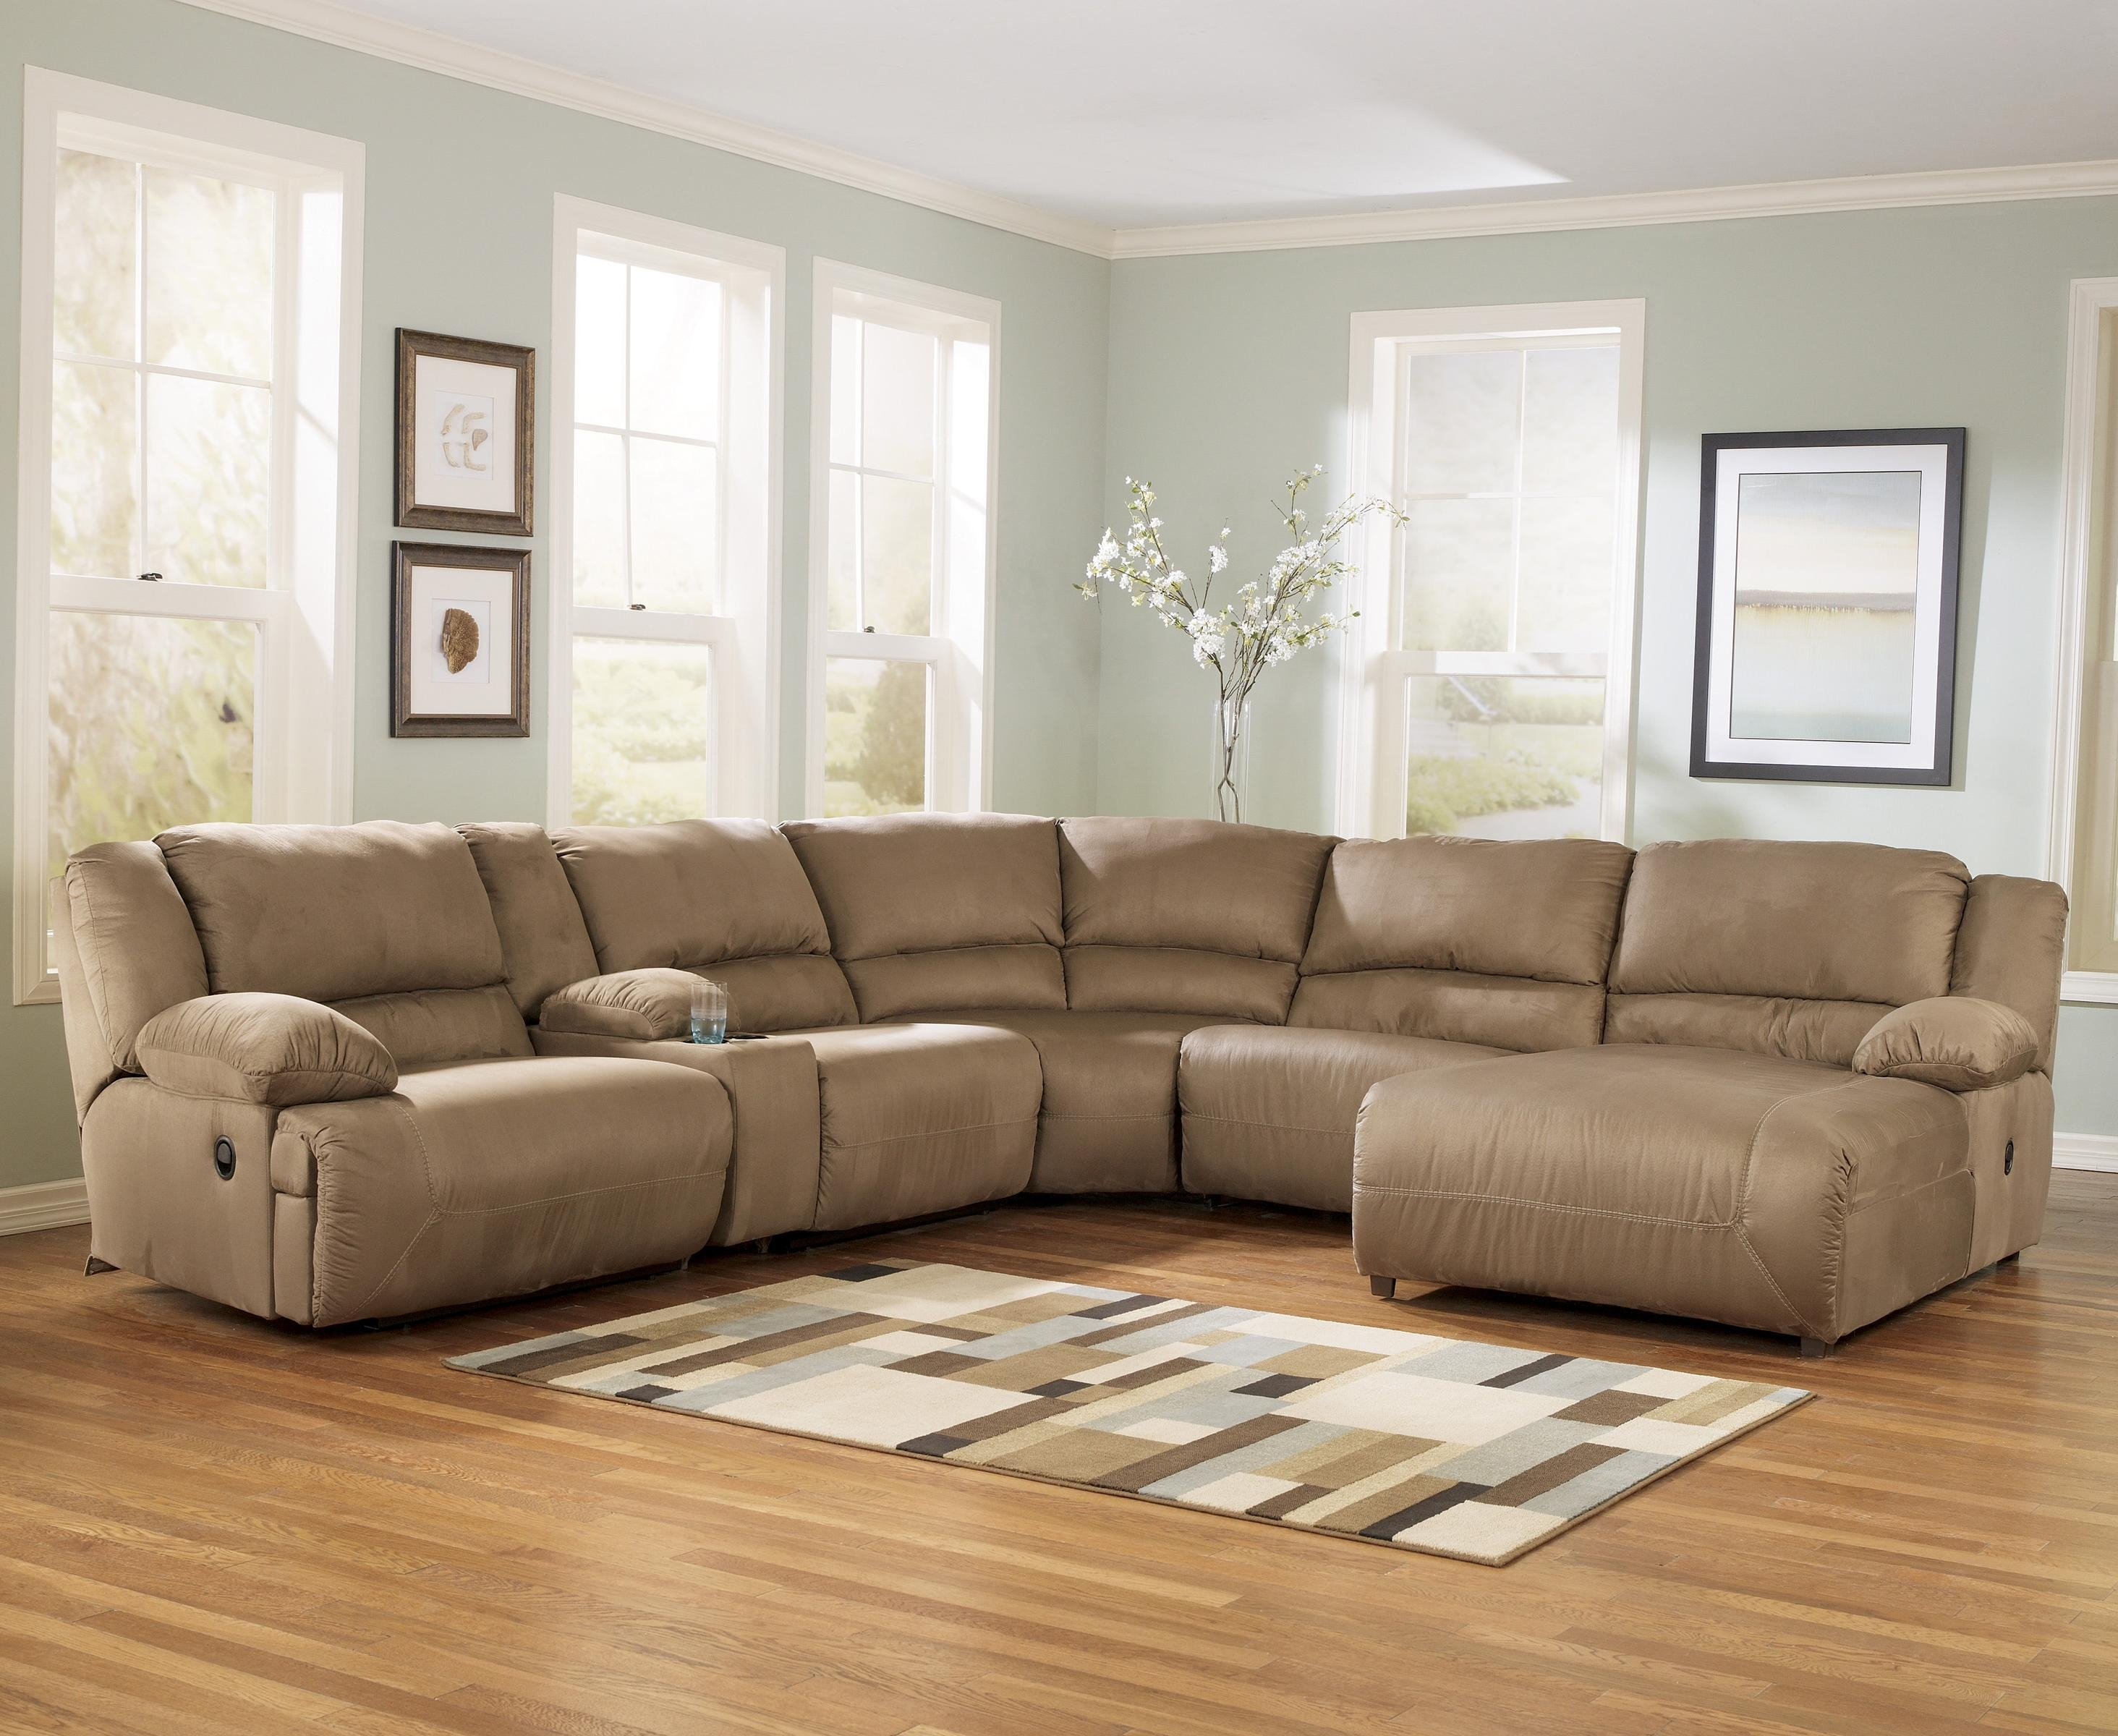 Xander Leather 6 Piece Chaise Sectional Sofa With 2 Power